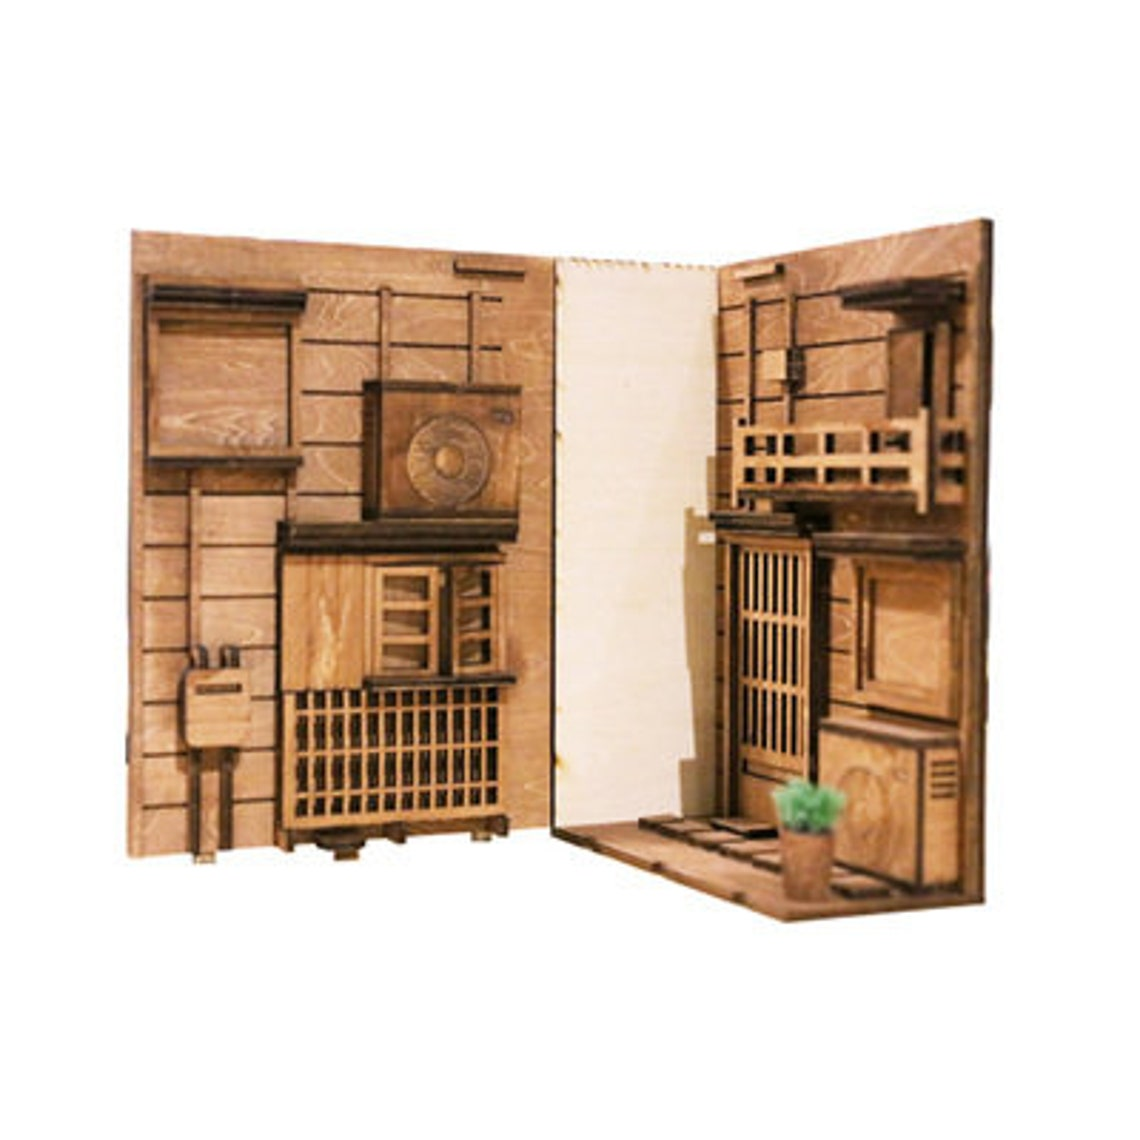 Japanese Alley Book Nook - Book Shelf Insert - Bookcase with Light Model Building Kit